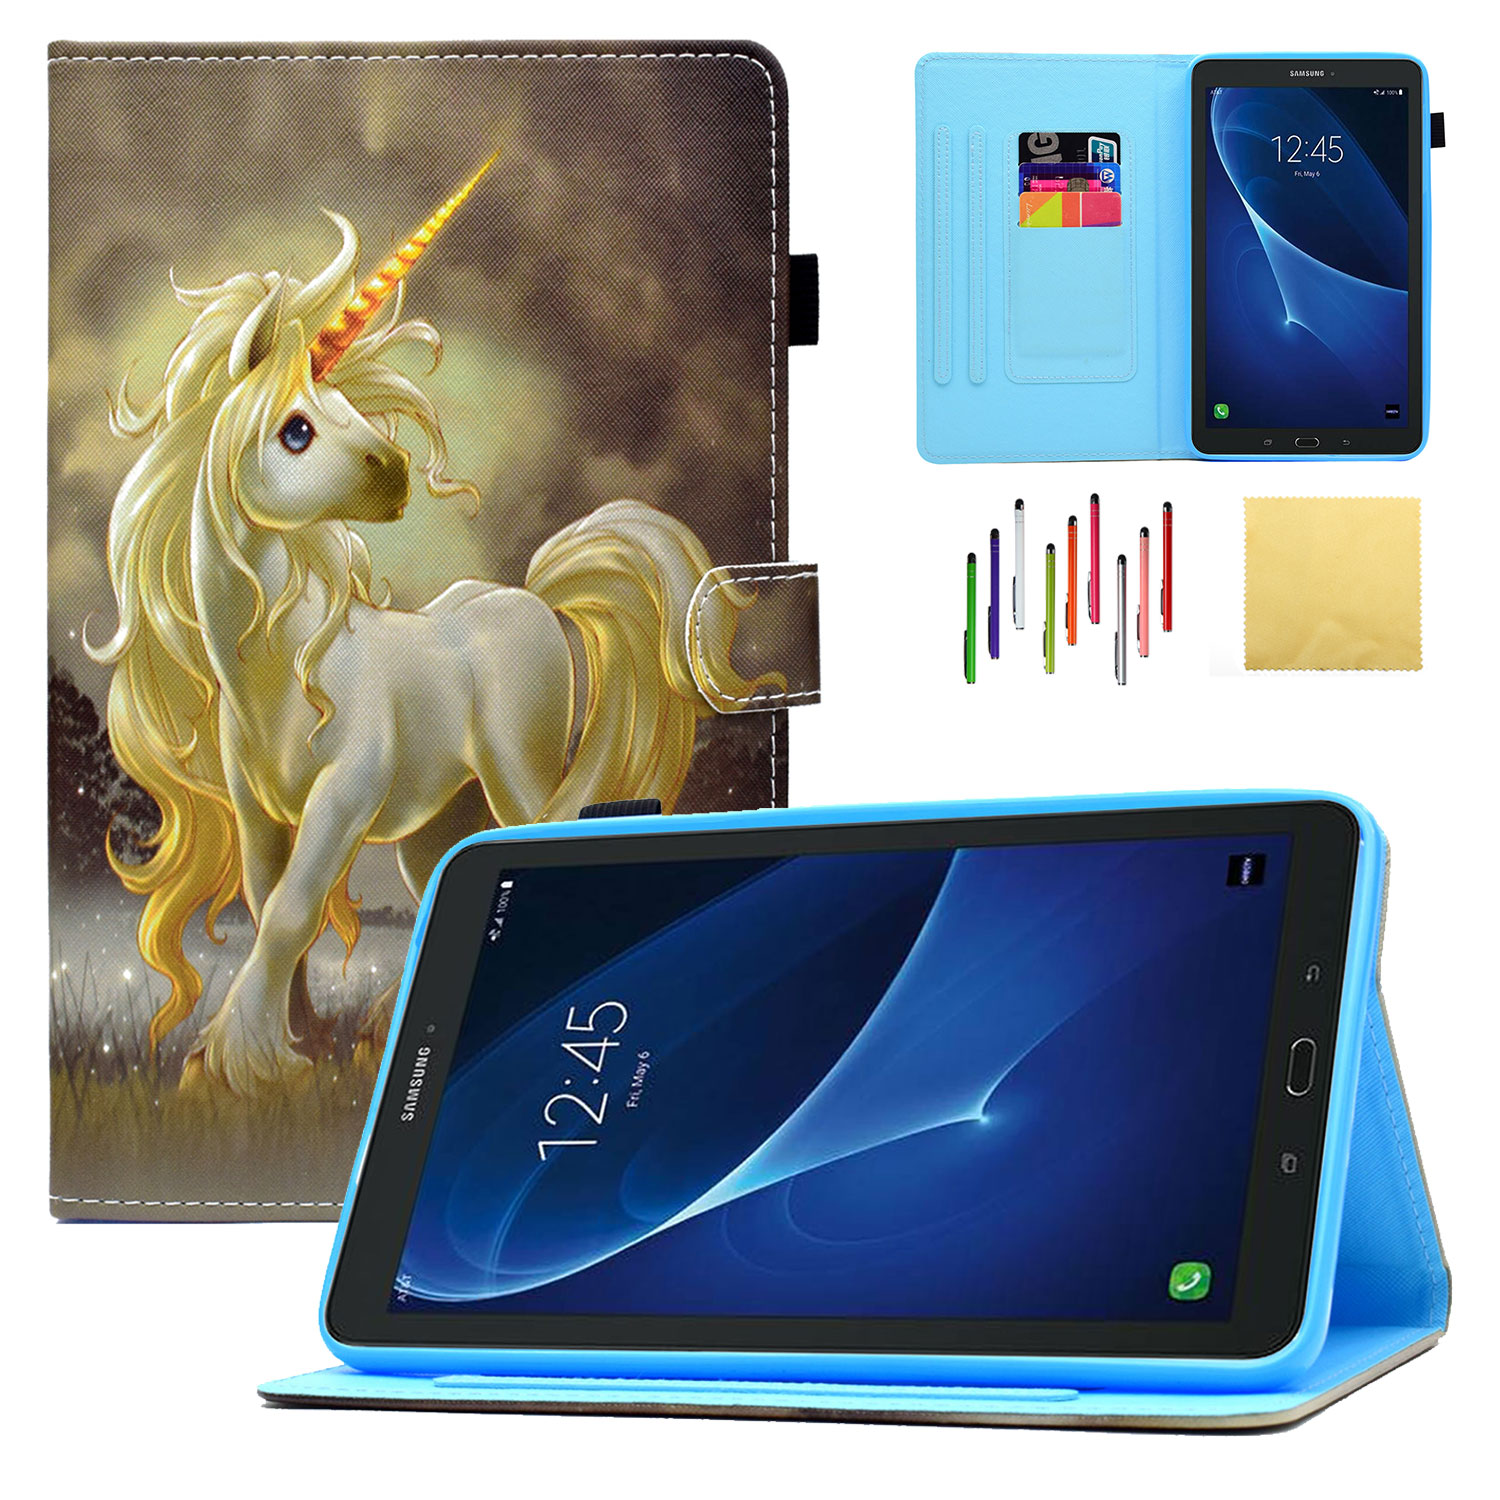 Galaxy Tab E 8.0 Tablet Case, SM-T377/T375 Case, Goodest Smart PU Leather Folio Folding Stand Cover with Pencil Holder Auto Wake/Sleep for Samsung Galaxy Tab E 8.0 (SM-T377/T375), Horse